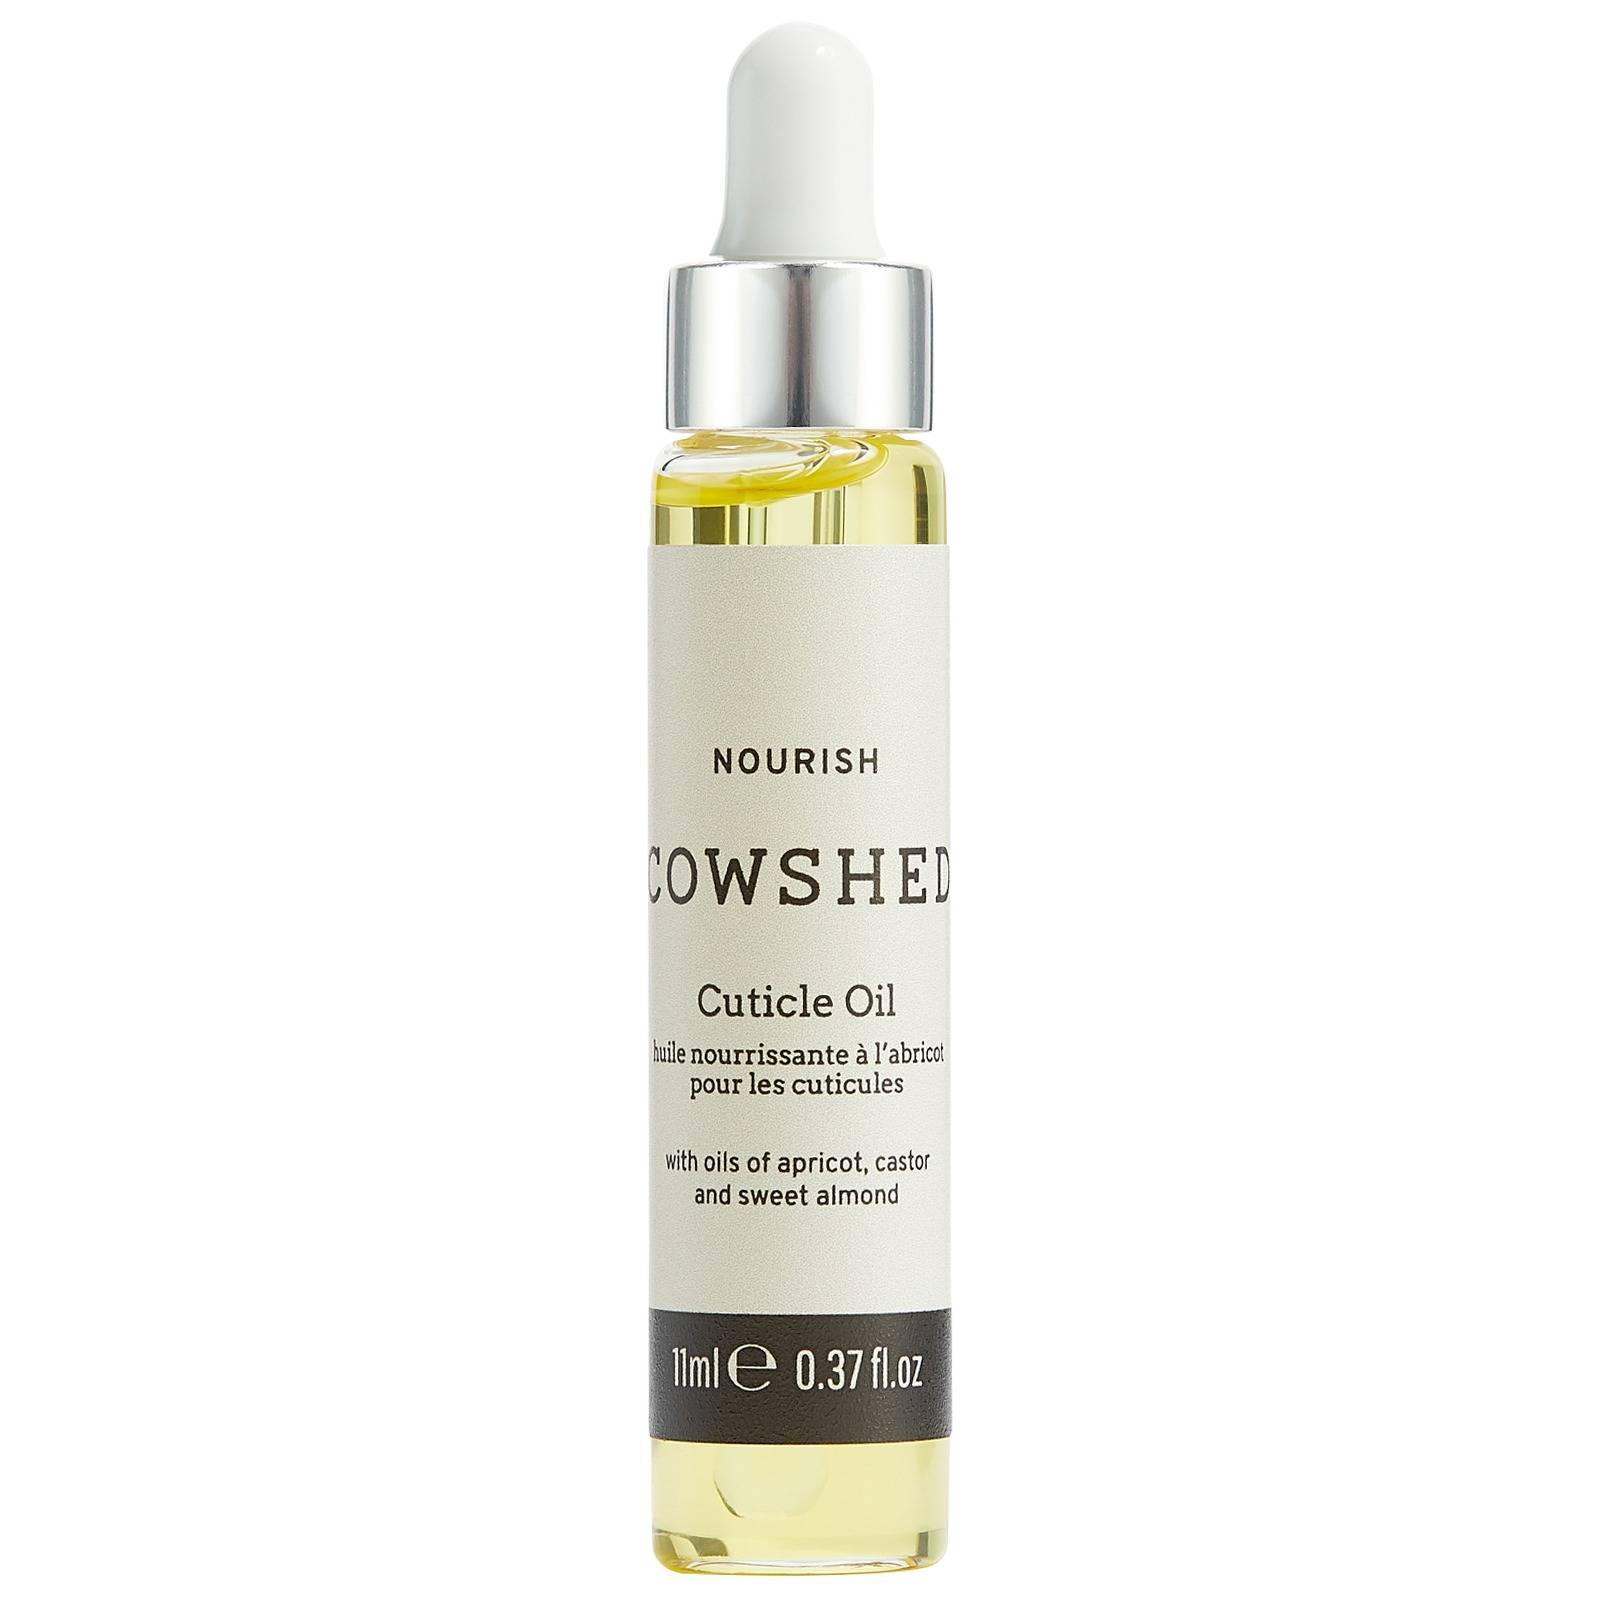 Cowshed - Hands Nourish Cuticle Oil 11ml for Women